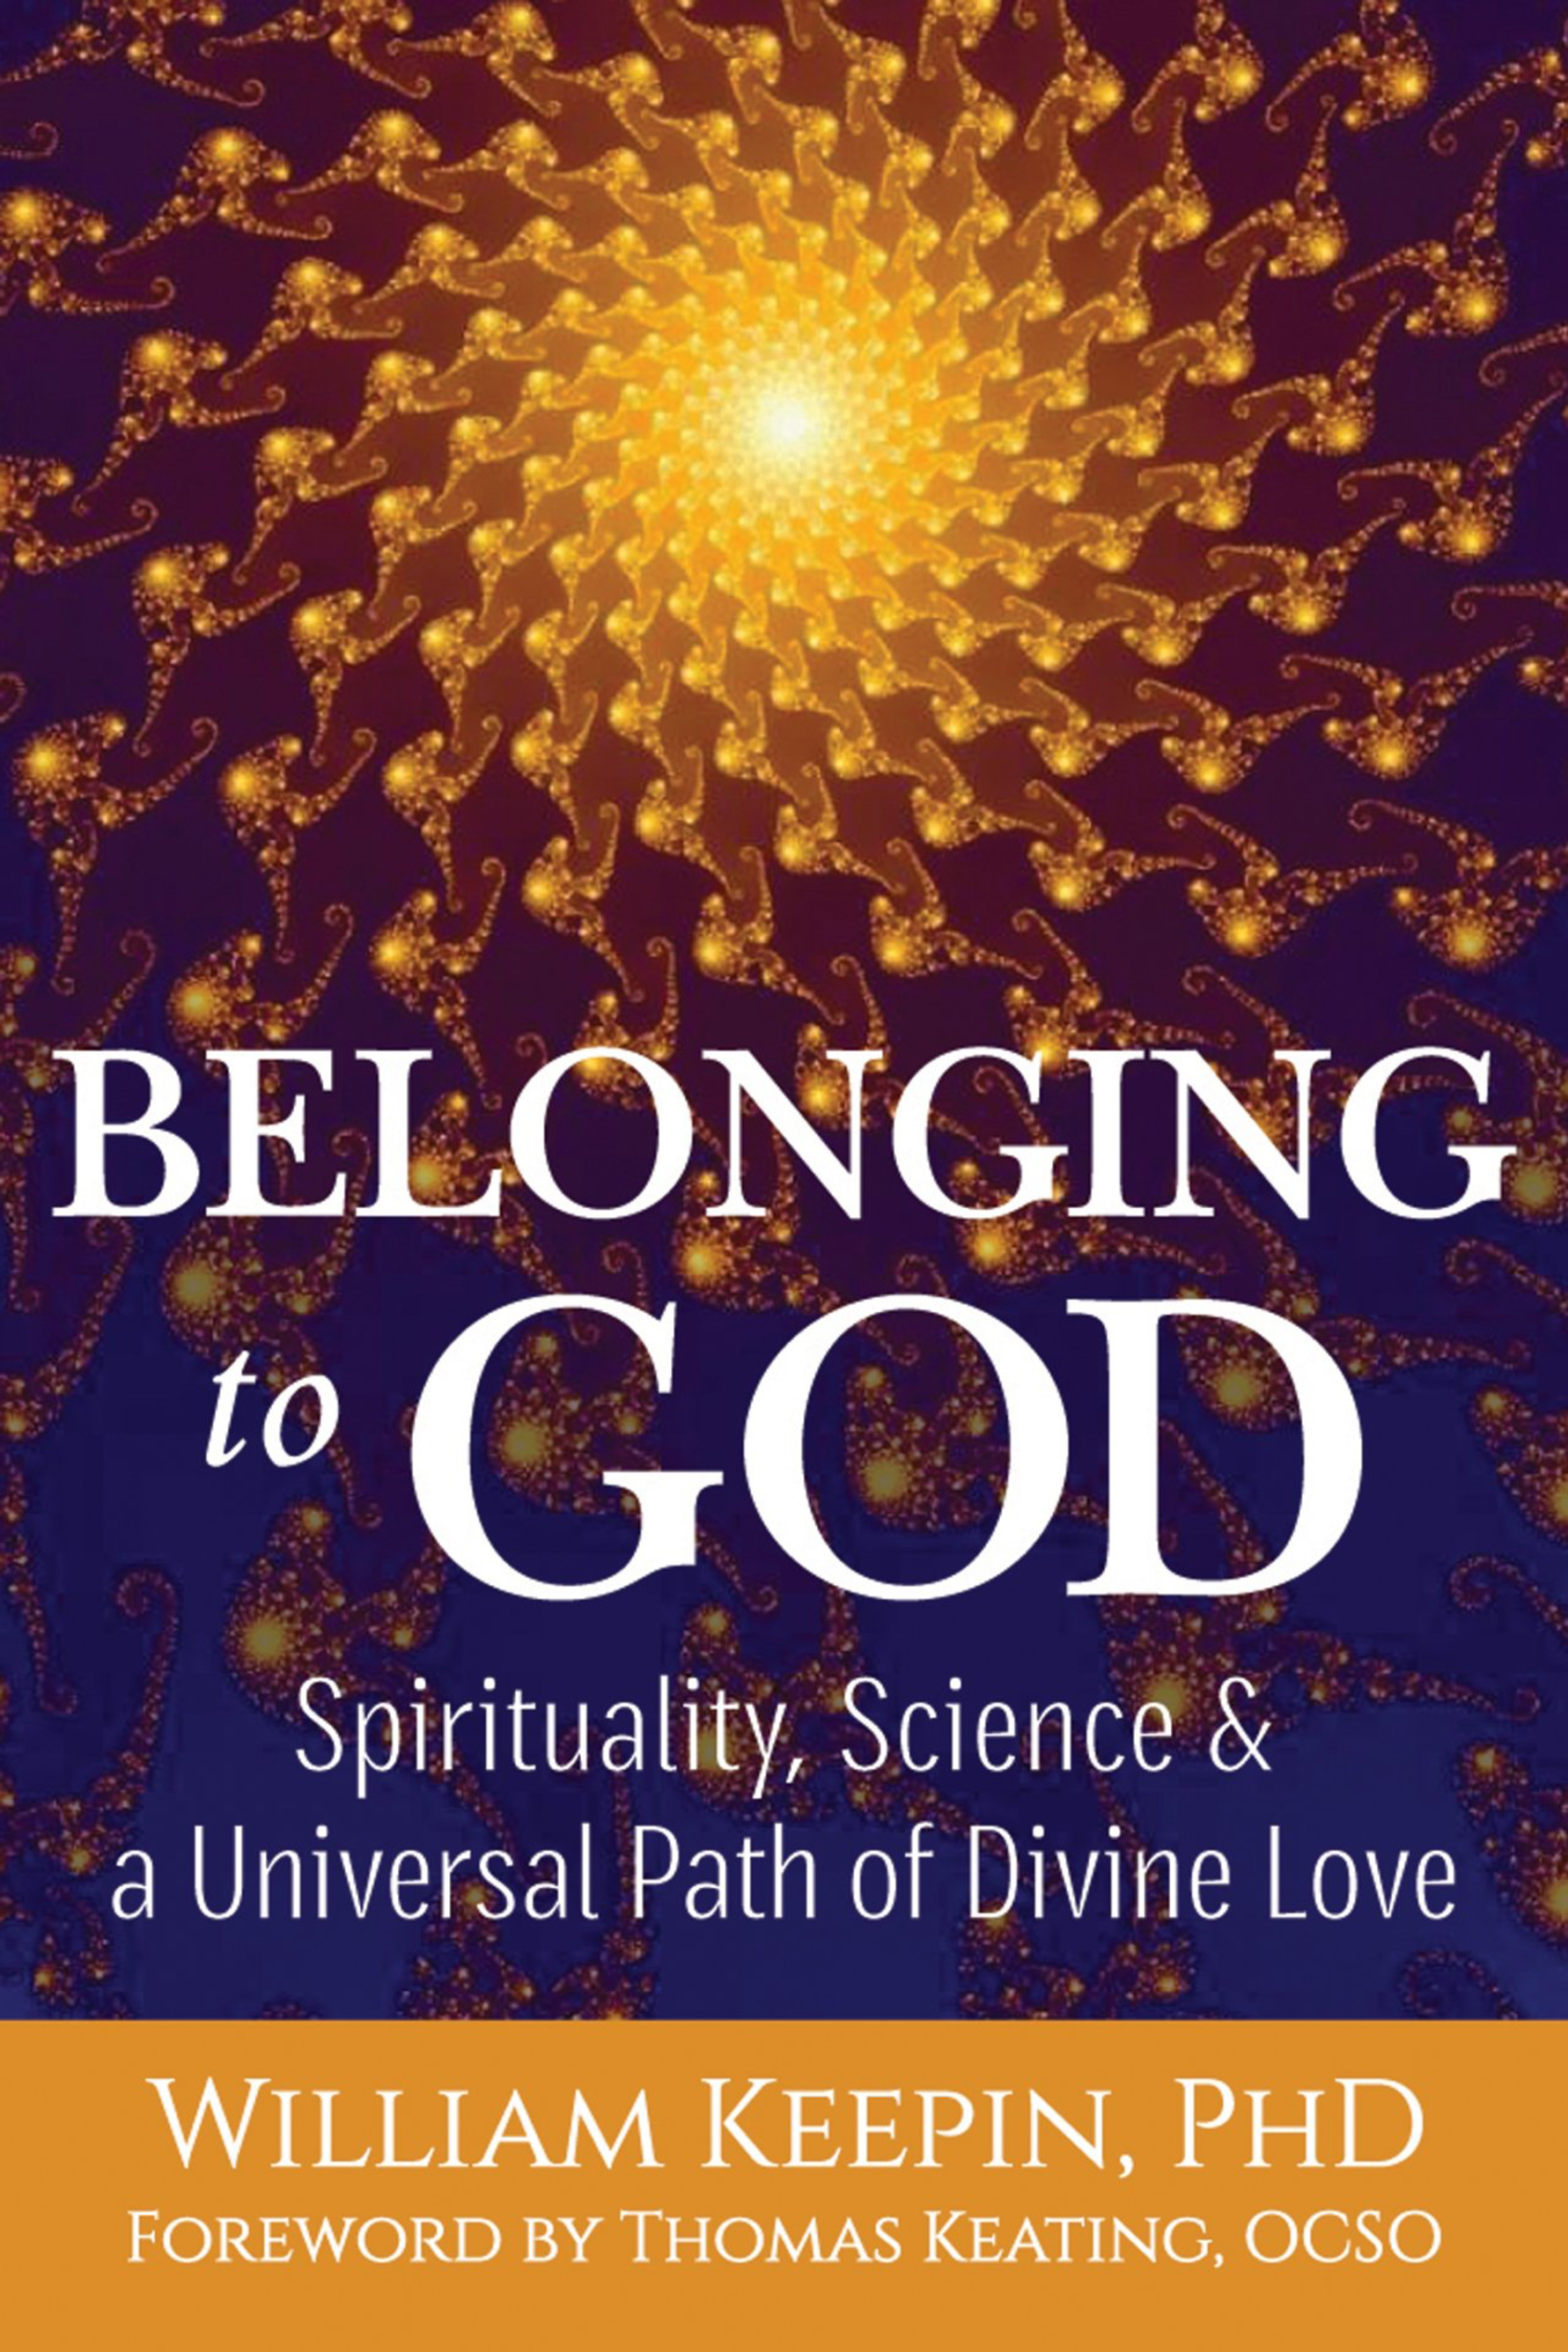 Belonging to God hr cover 2